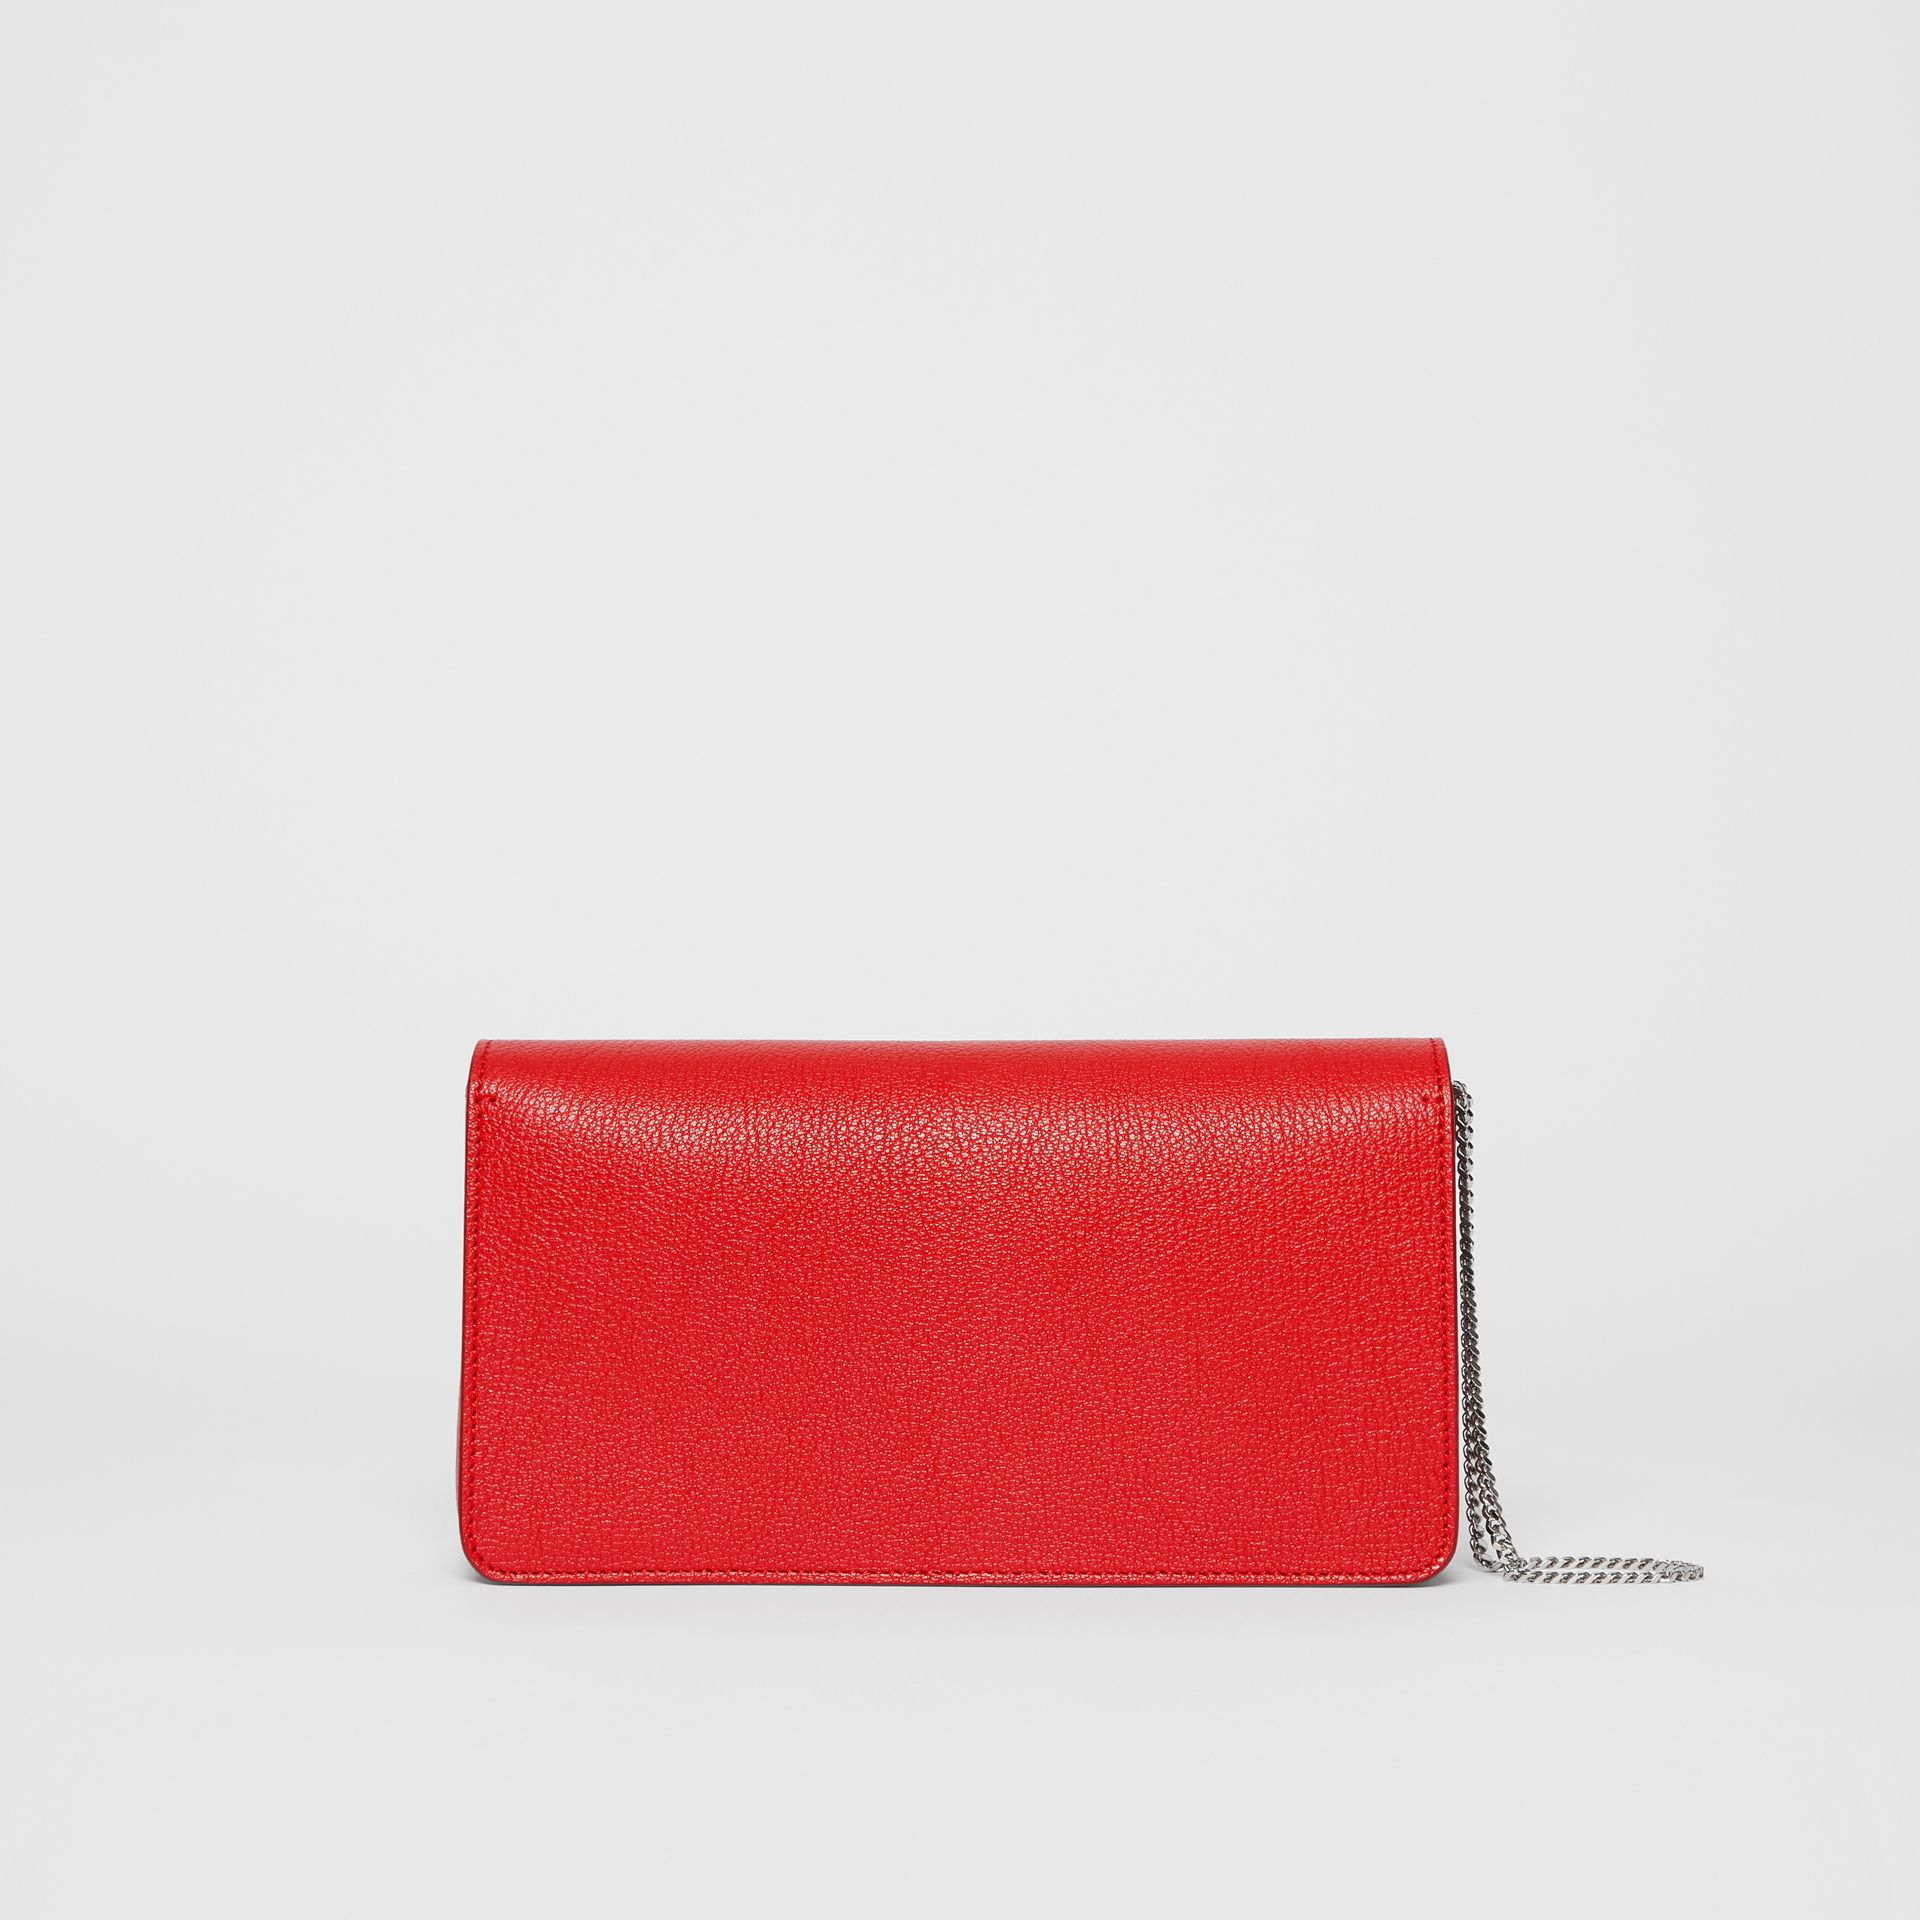 Leather Grace Clutch in Bright Military Red - Women | Burberry - gallery image 7